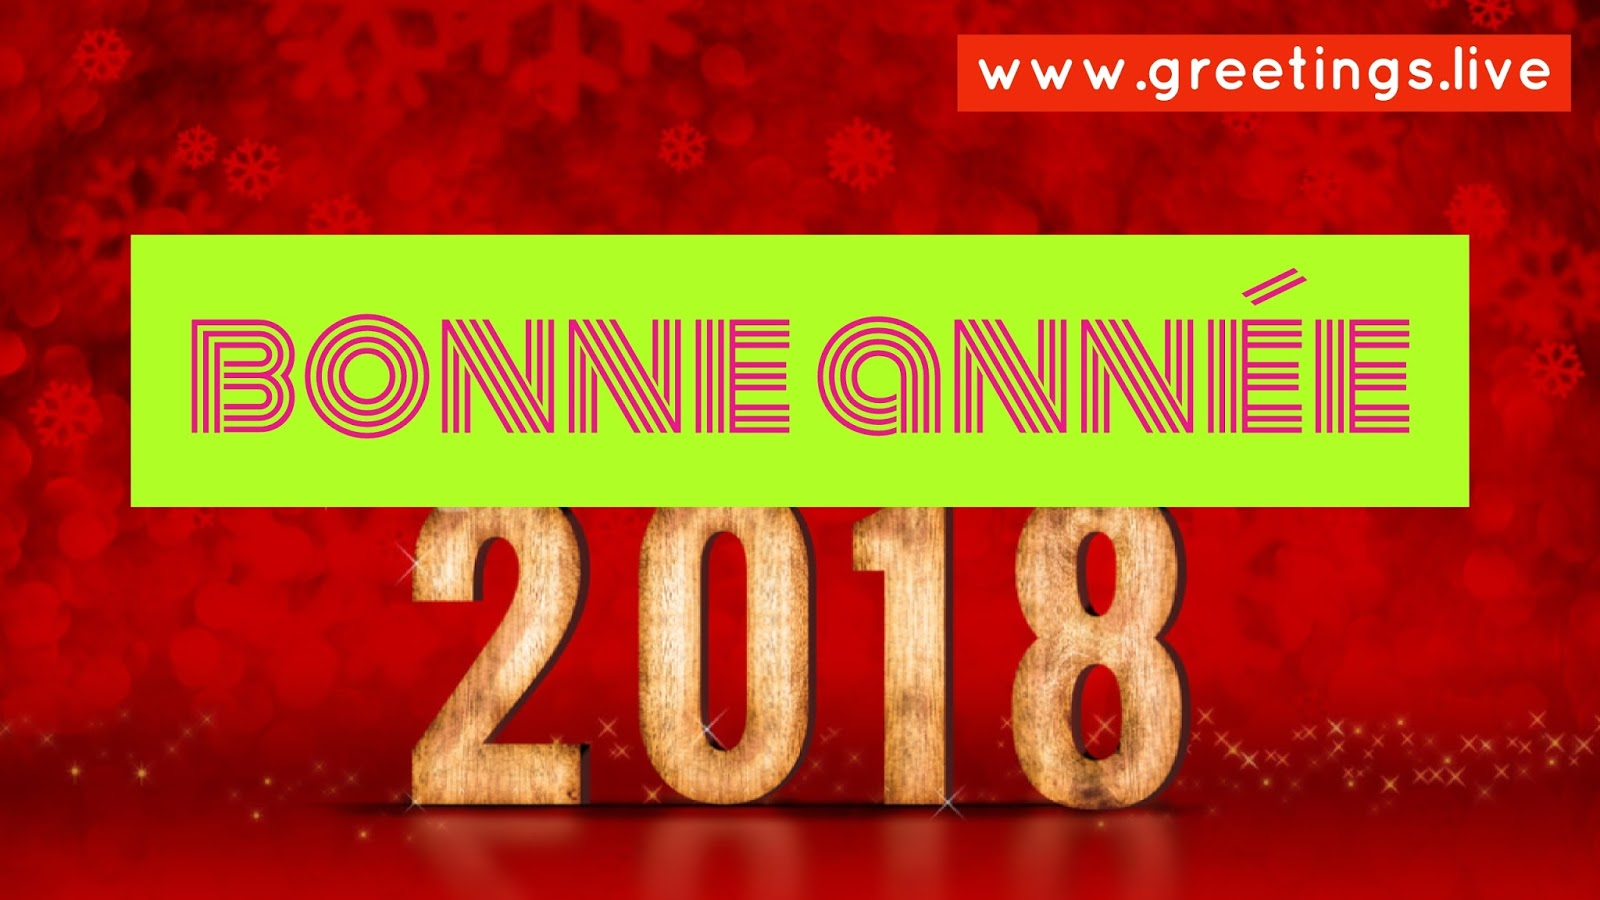 Greetingsve hd images love smile birthday wishes free download french greetings on happy new year 2018 m4hsunfo